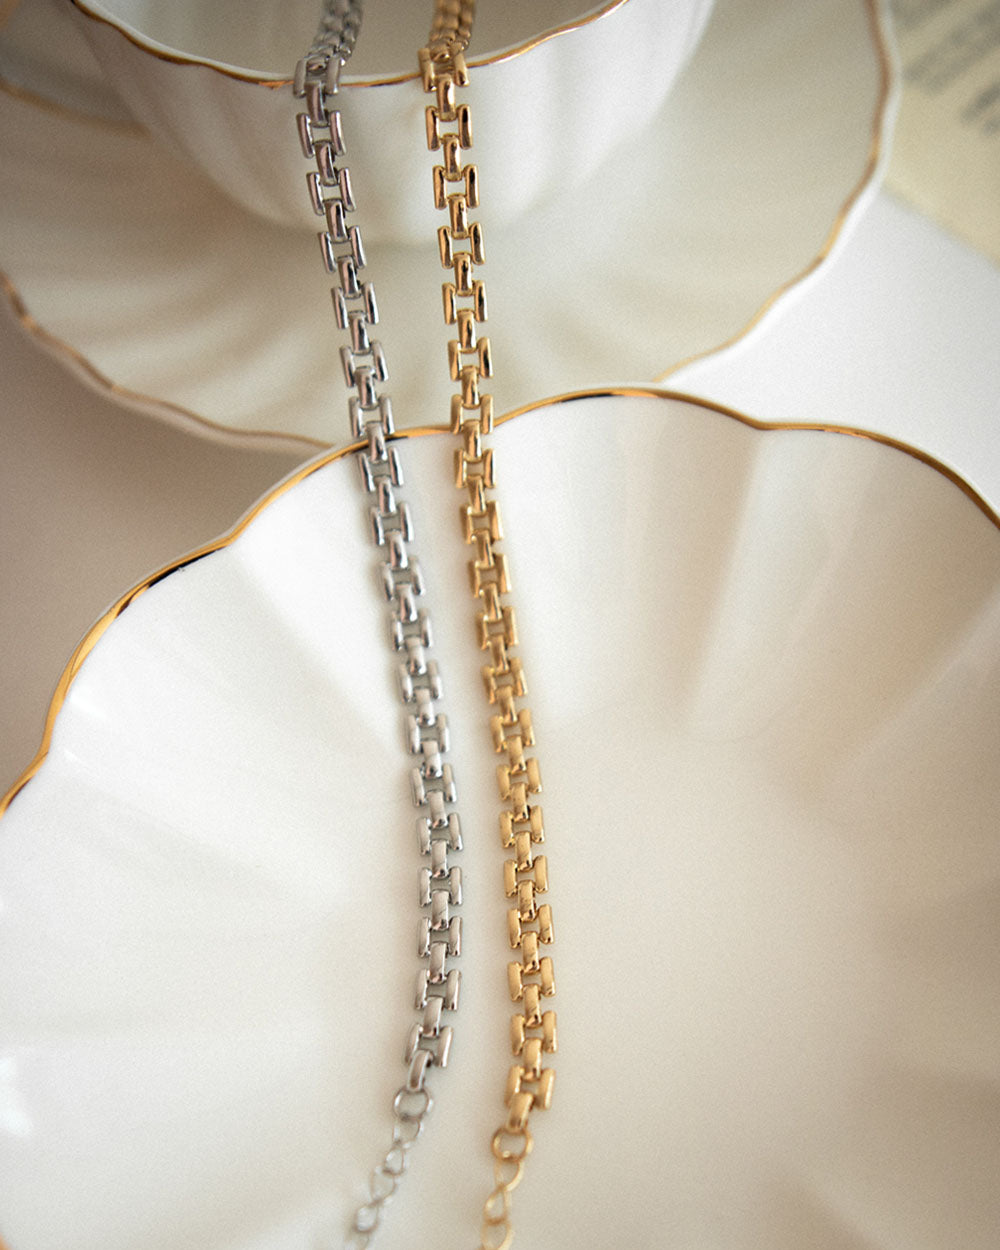 Tetris chain link choker in gold and silver colours by The Hexad Jewelry